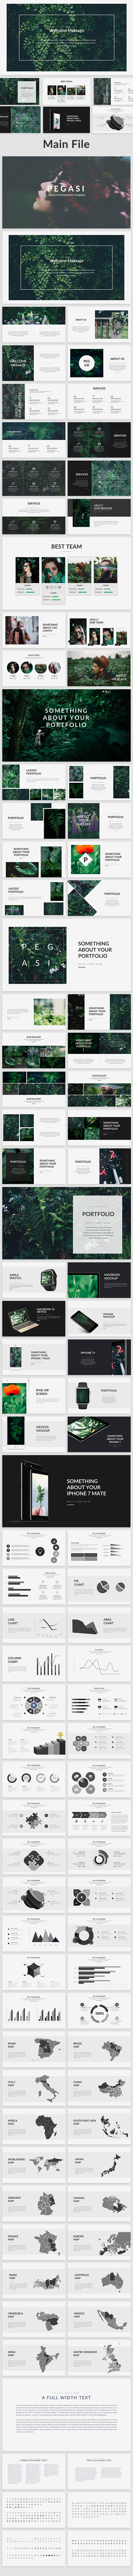 Pegasi - Creative Powerpoint Template - Creative PowerPoint Templates